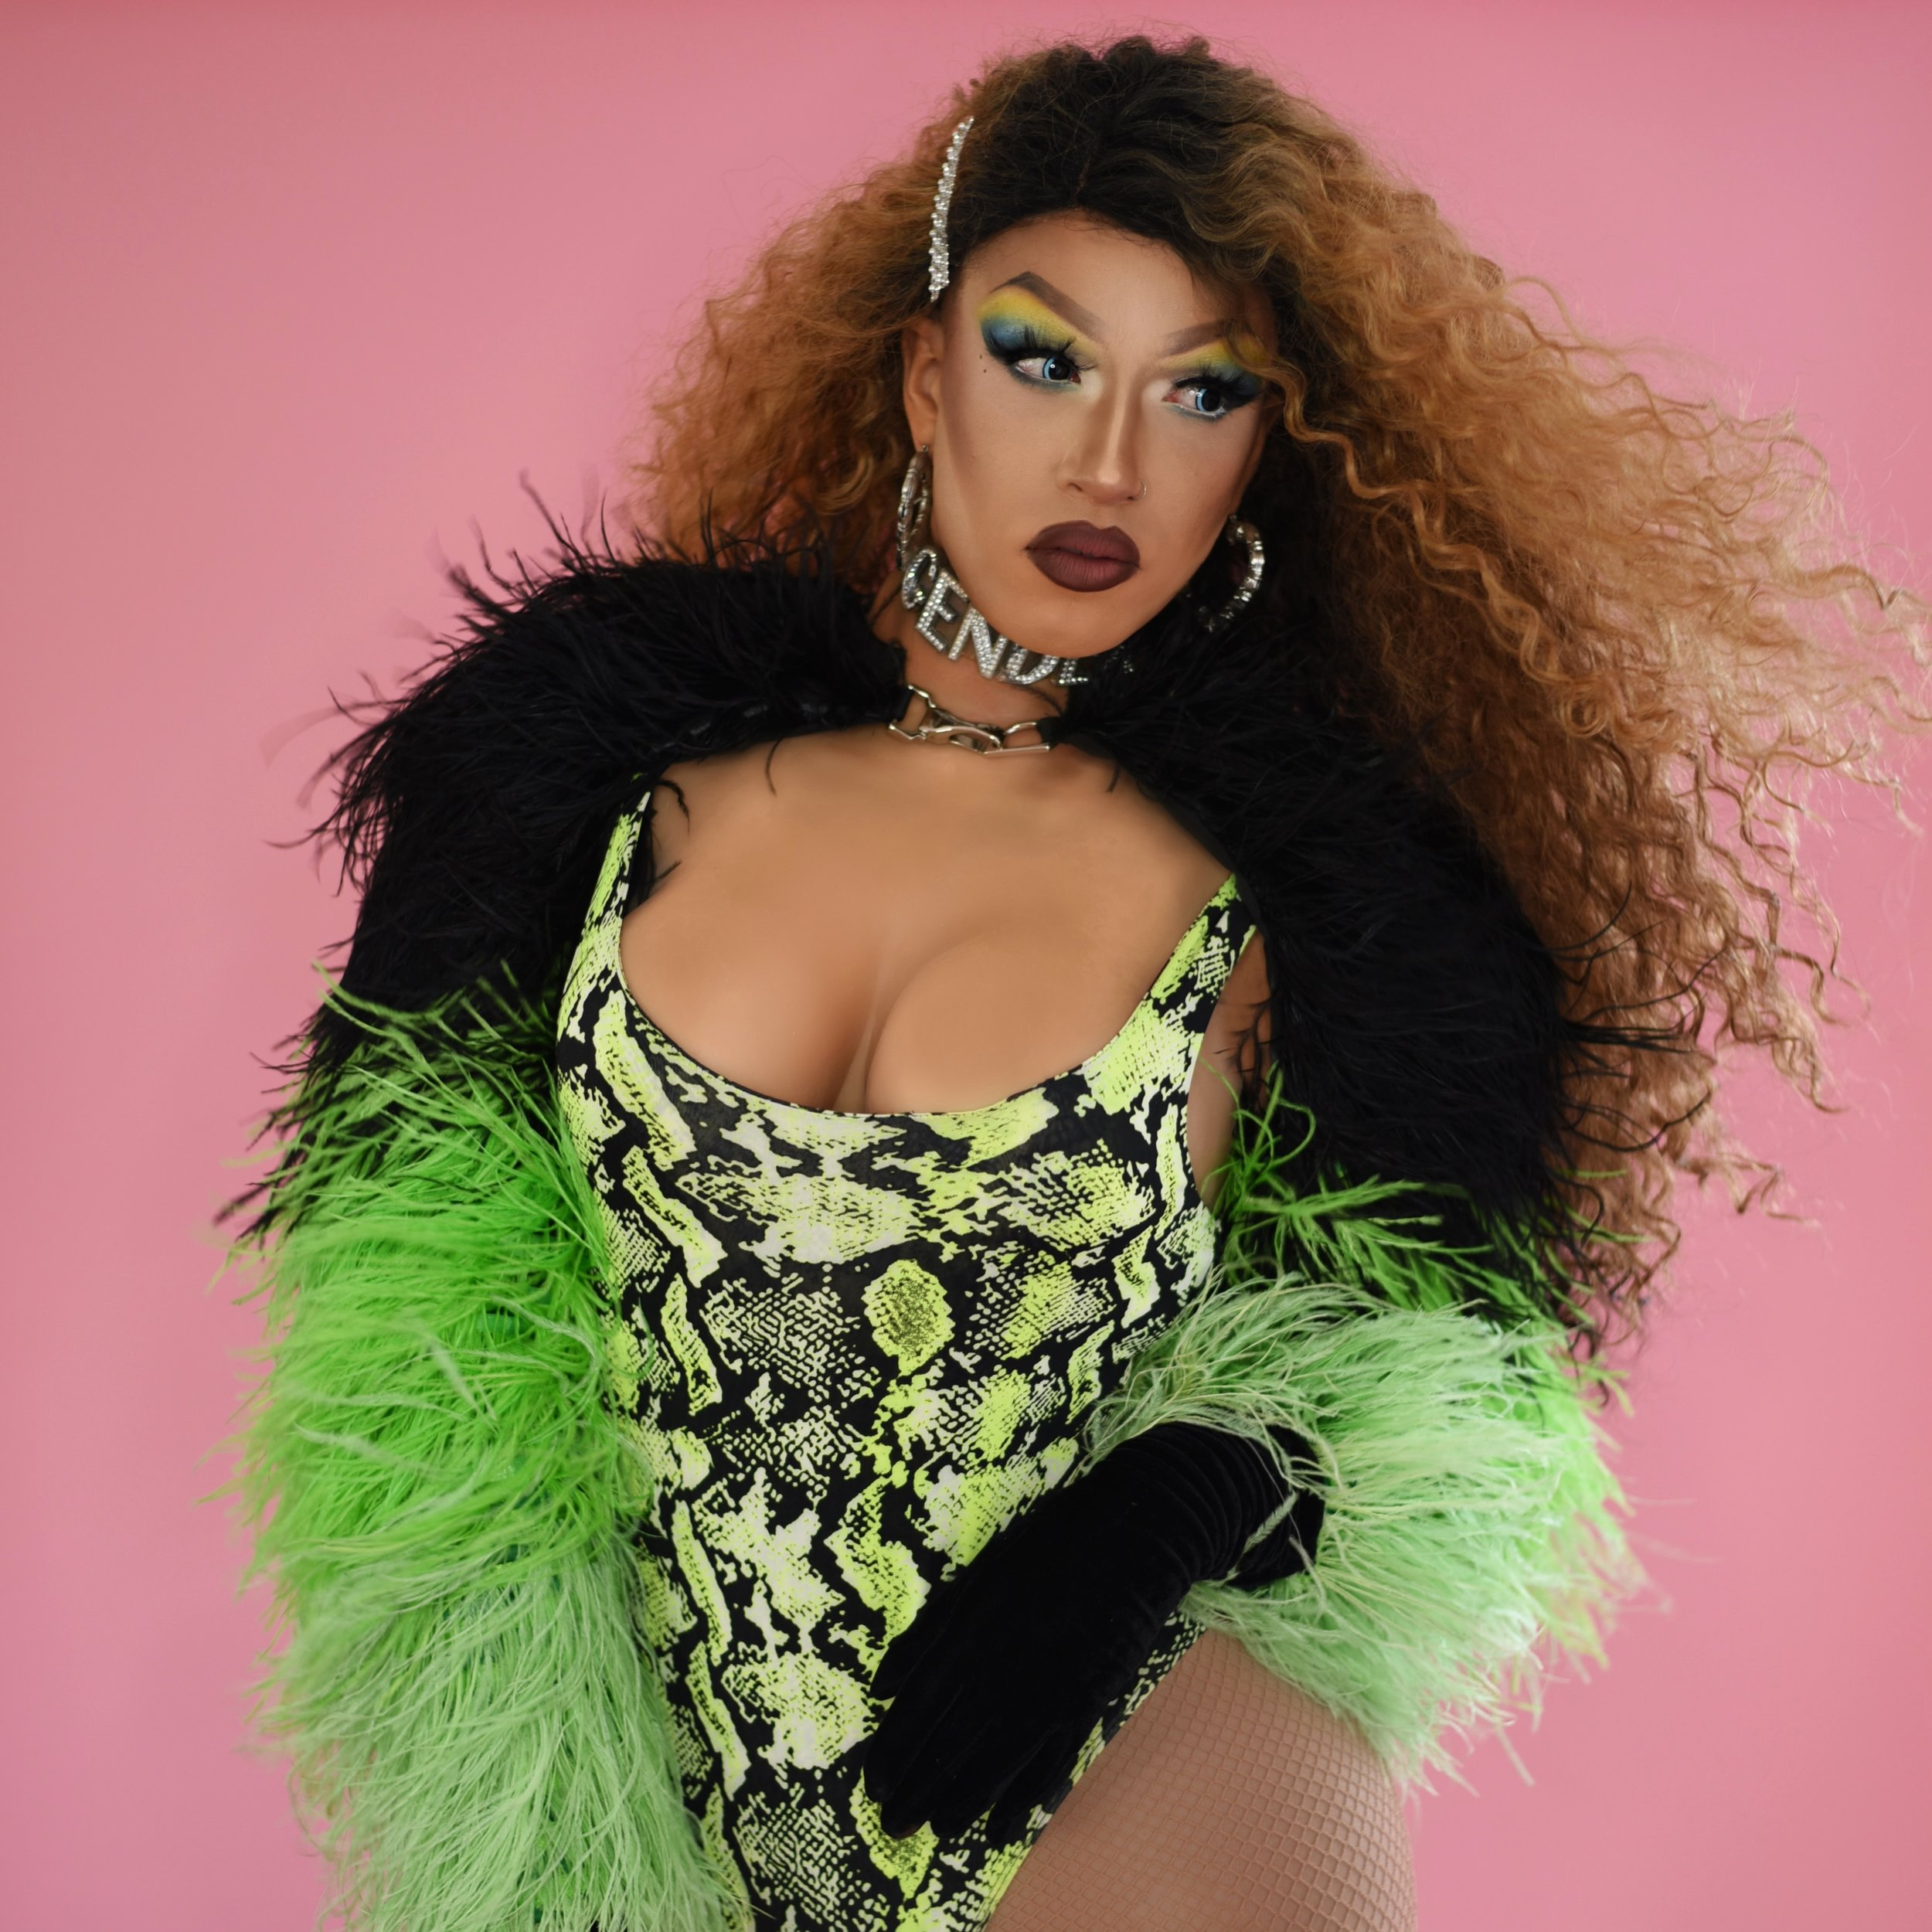 "kendall gender - Kendall Gender is a local drag performer in Vancouver. With a flare for fashion and an always energetic performance style she is quite hard to miss. Kendall has a weekly show at the junction with her girl gang ""BRATPACK"", and hosts and performs at a slew of various parties and events all over Vancouver and Canada.@kendallgender"